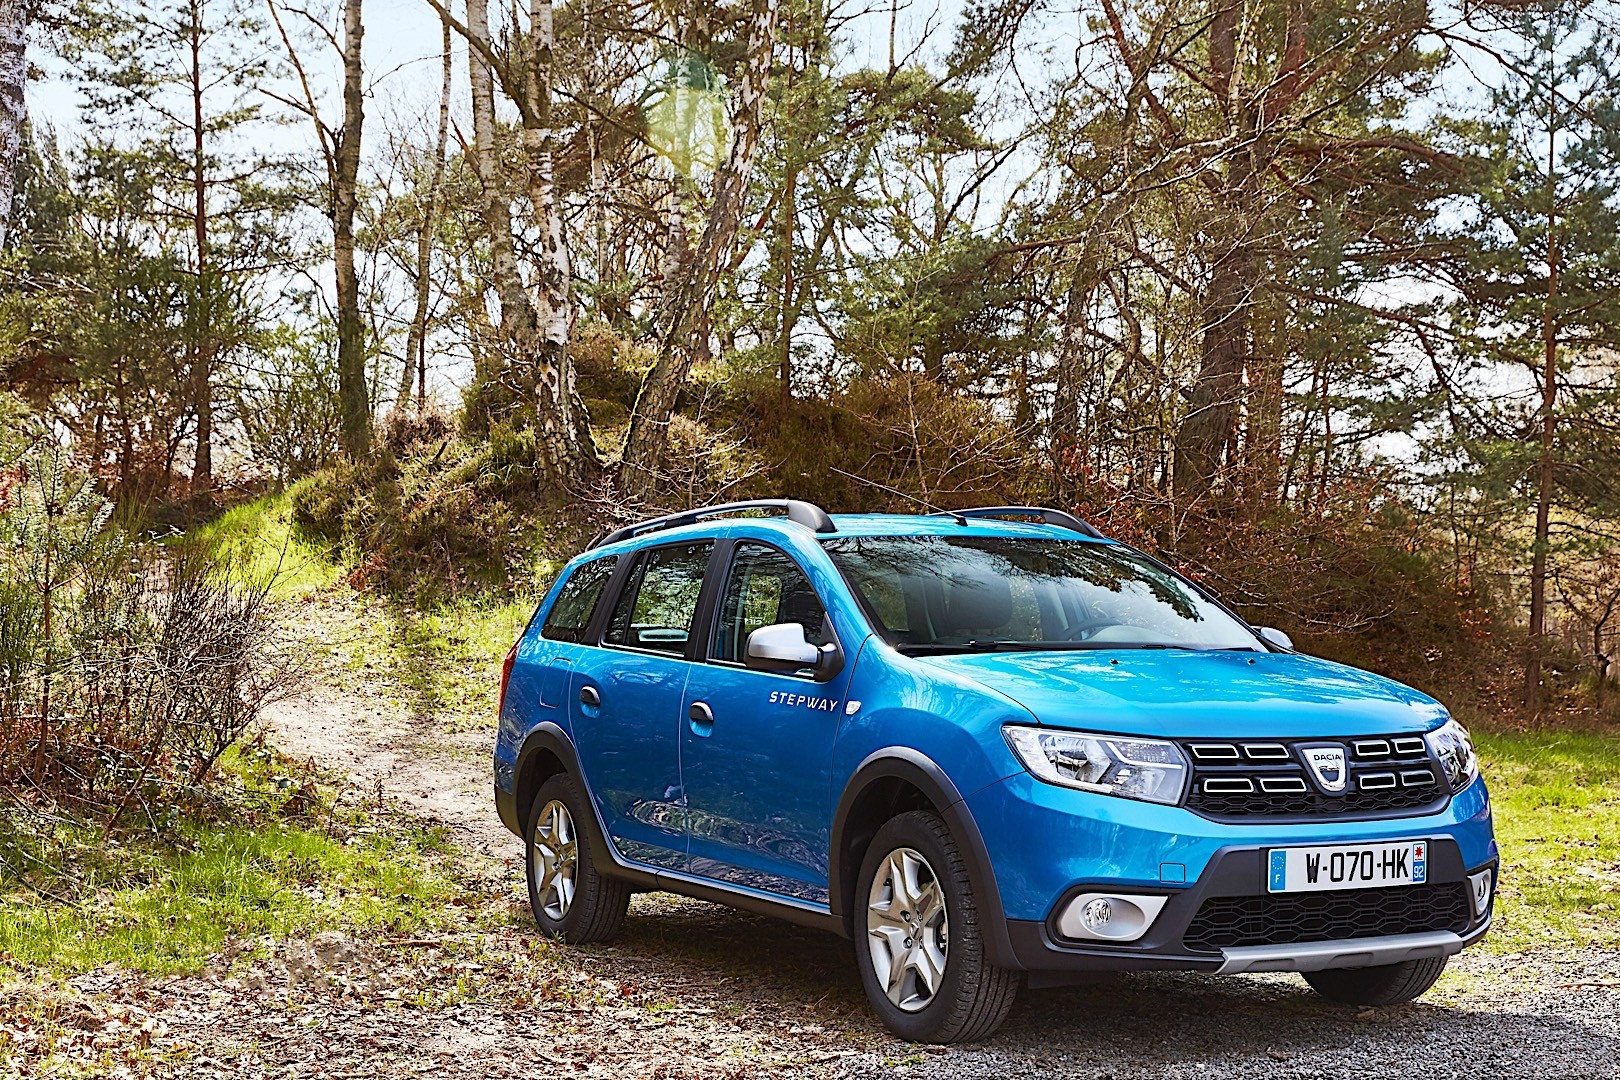 dacia logan mcv stepway specs 2017 2018 autoevolution. Black Bedroom Furniture Sets. Home Design Ideas